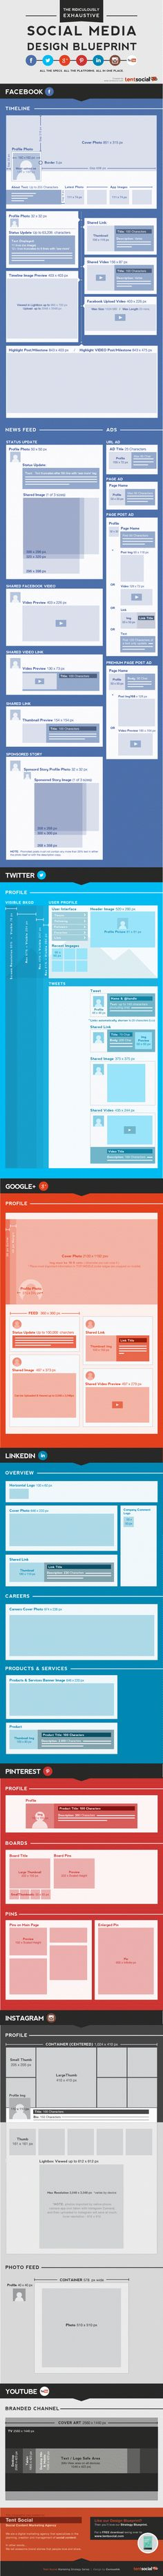 social media image sizes infographic Social Media Image Dimensions: The Ultimate Guide